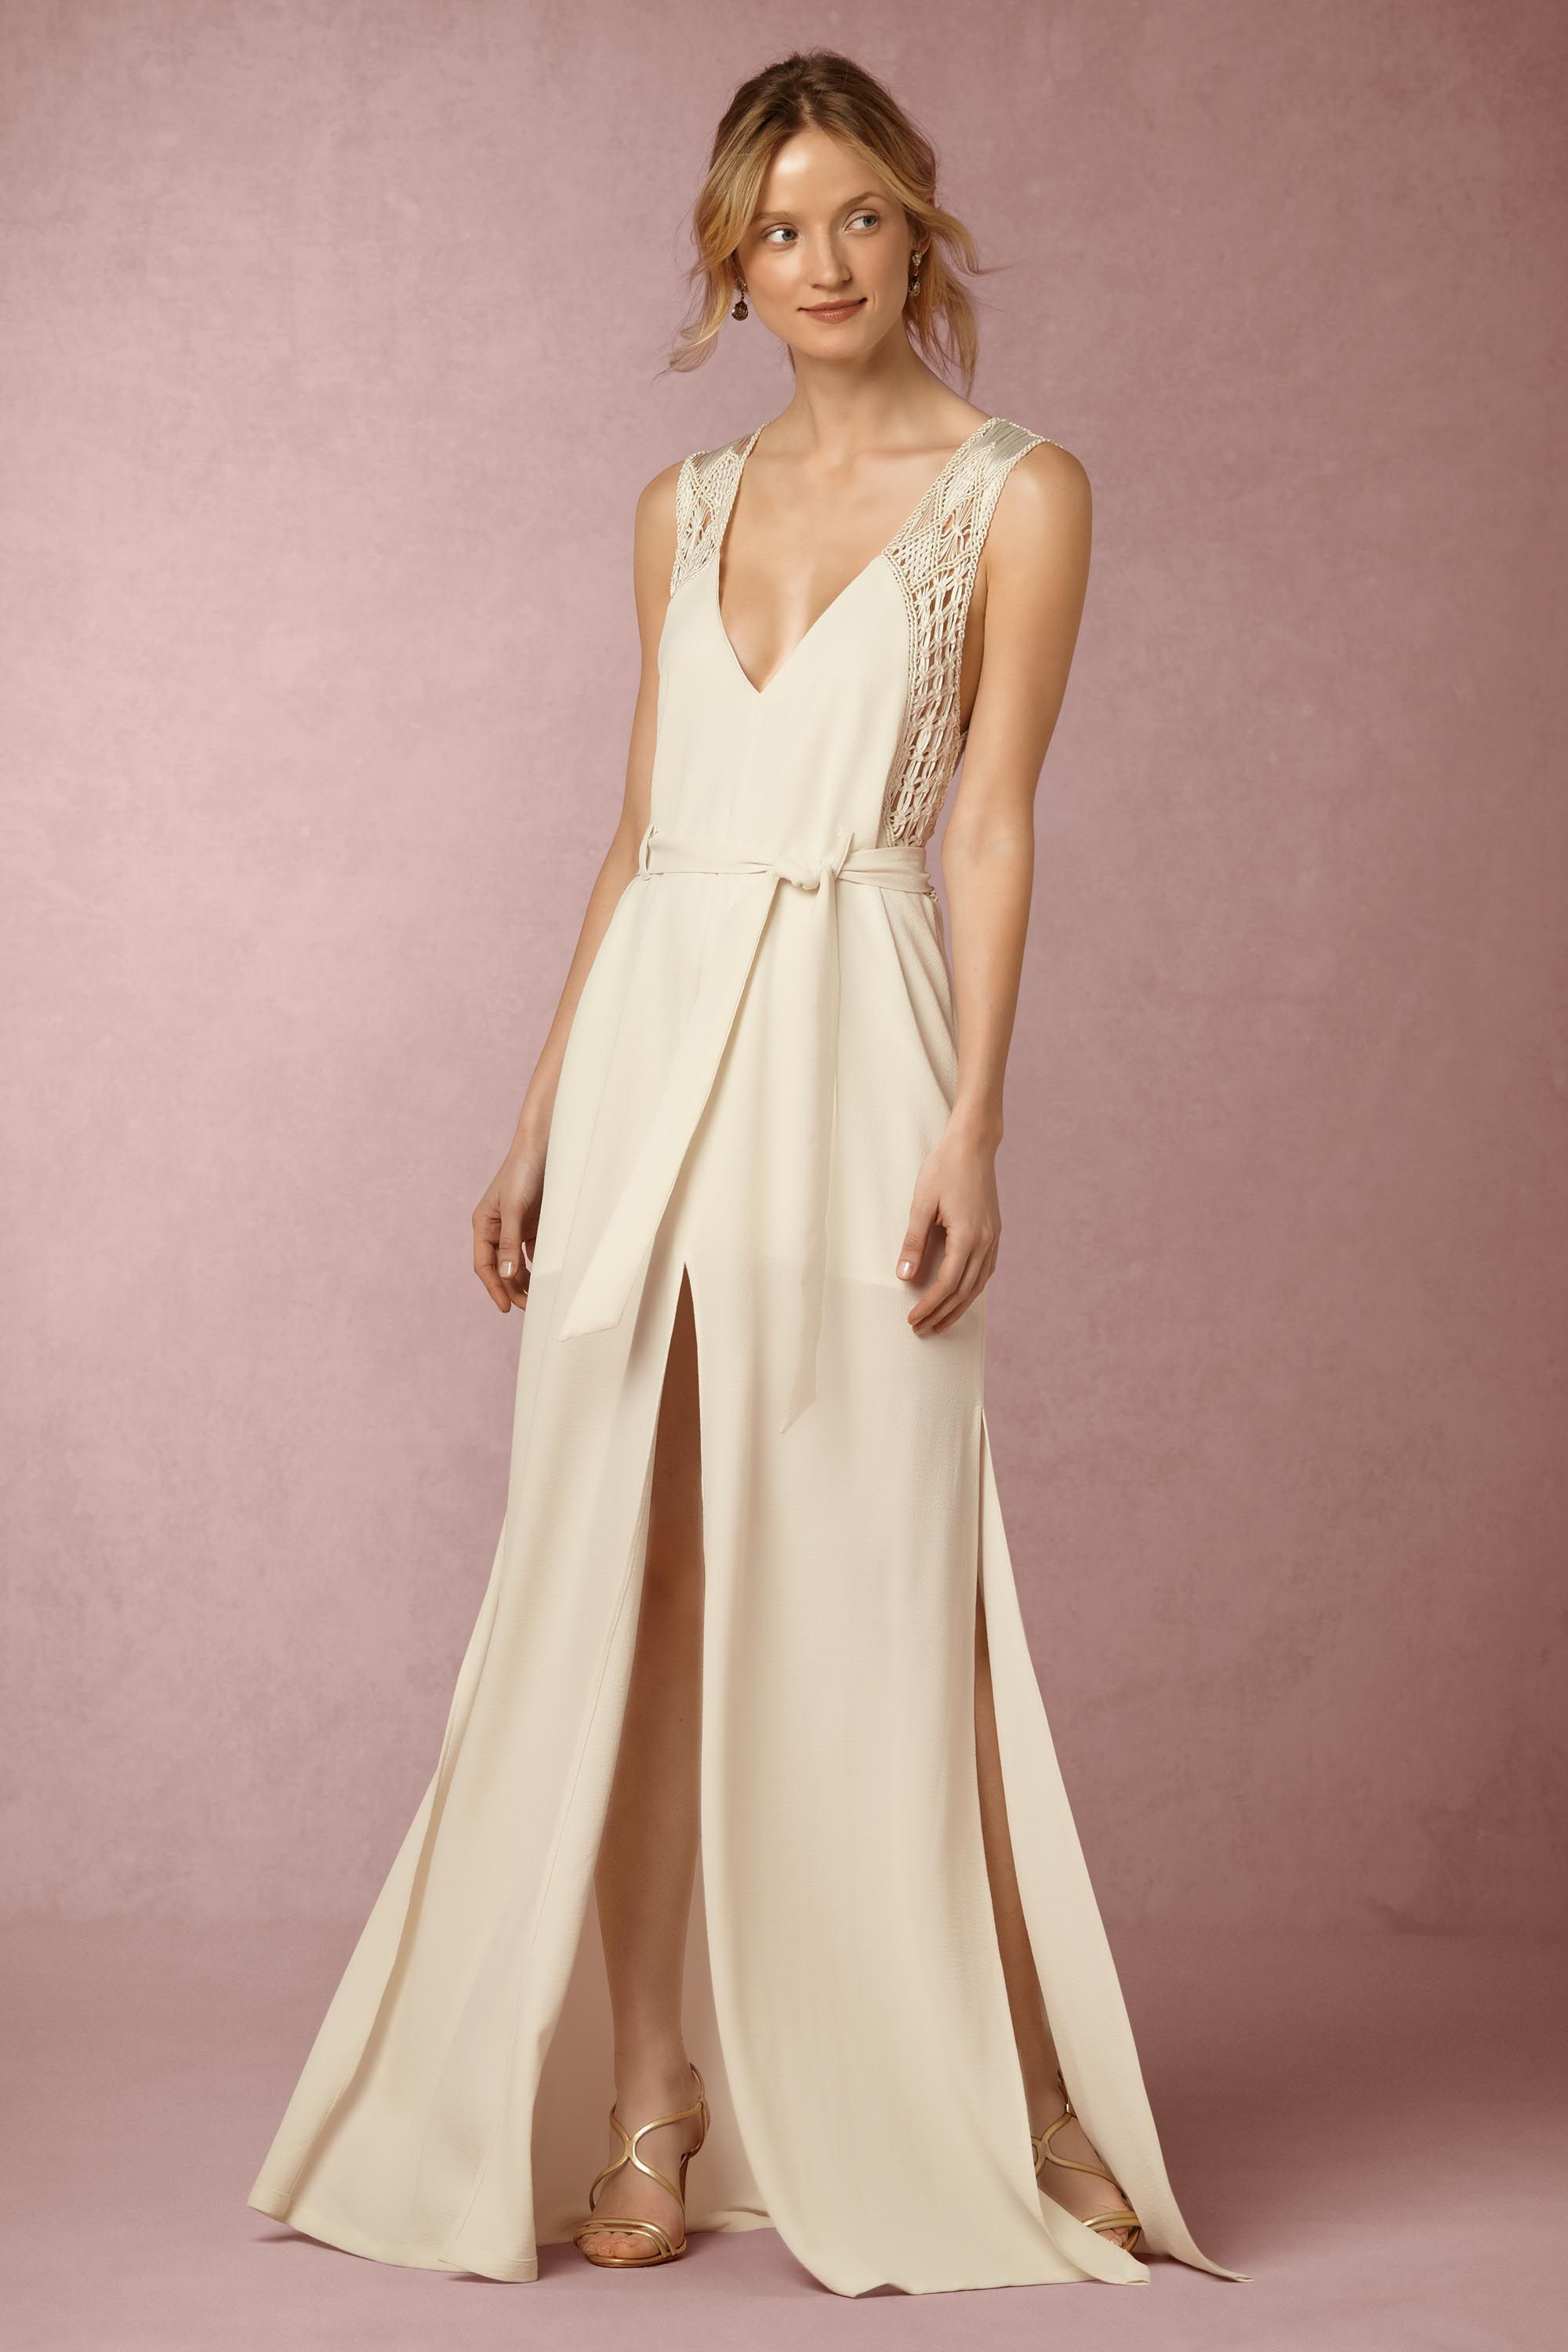 d0bc33c2a0f Alanis Dress from  BHLDN Can t tell if there s a weird underlay but like  the general style